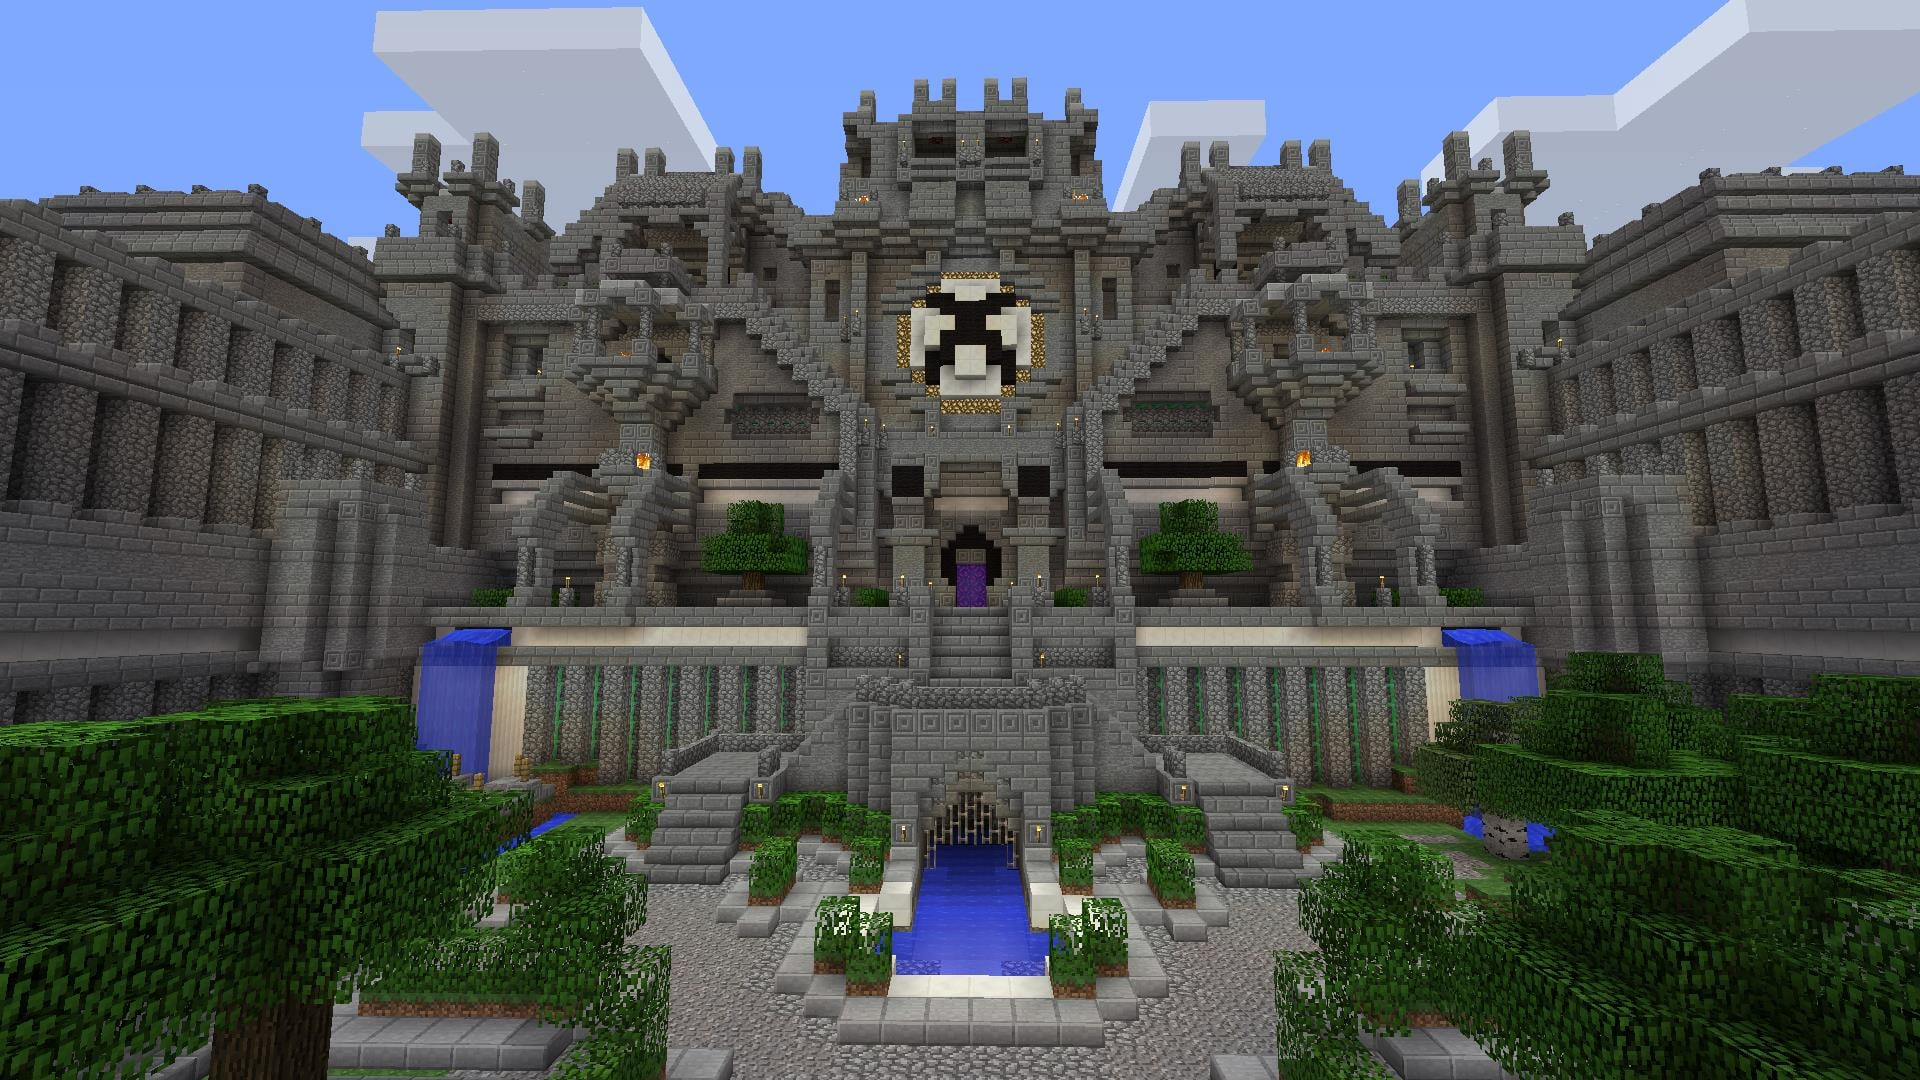 Catch A Glimpse Of Minecraft On The Xbox One